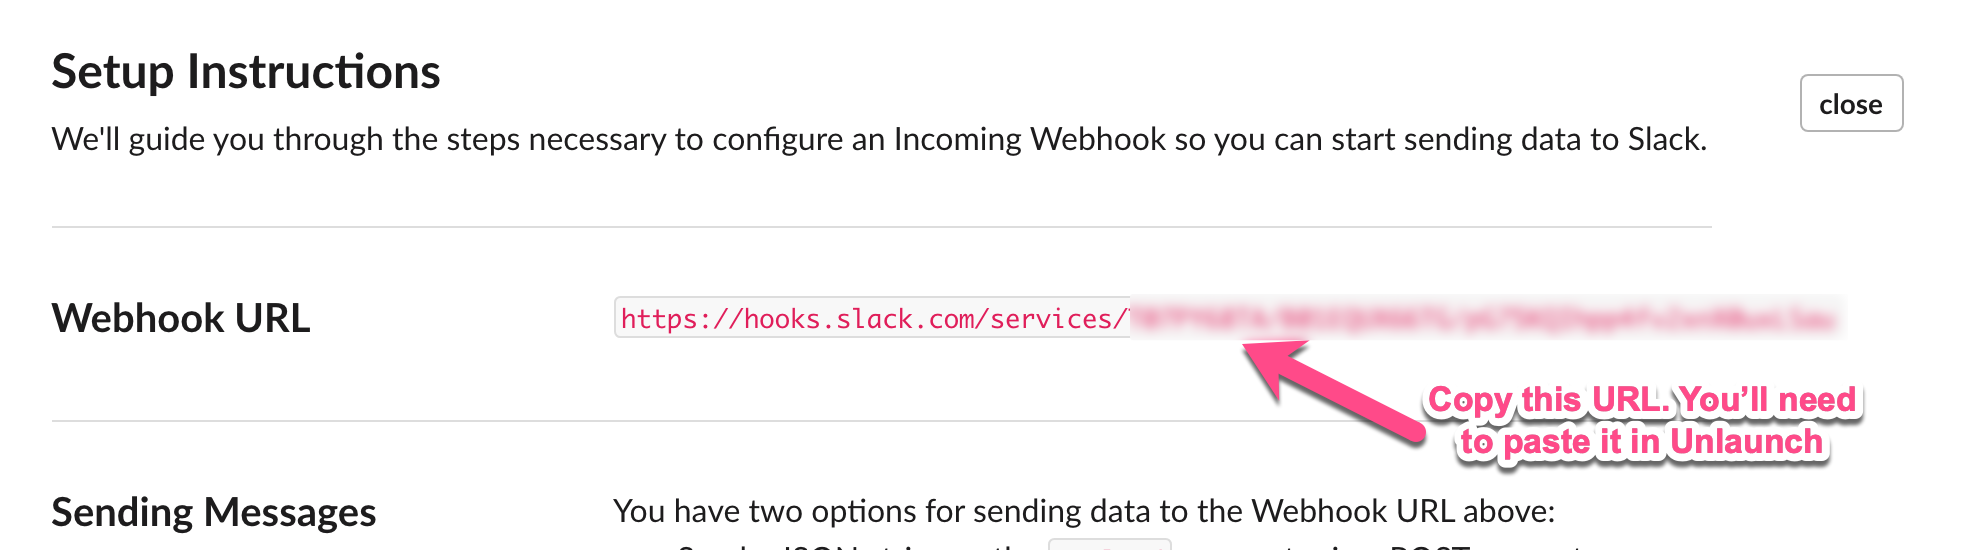 Copy Webhook URL which you'll need to provide in the Unlaunch Console